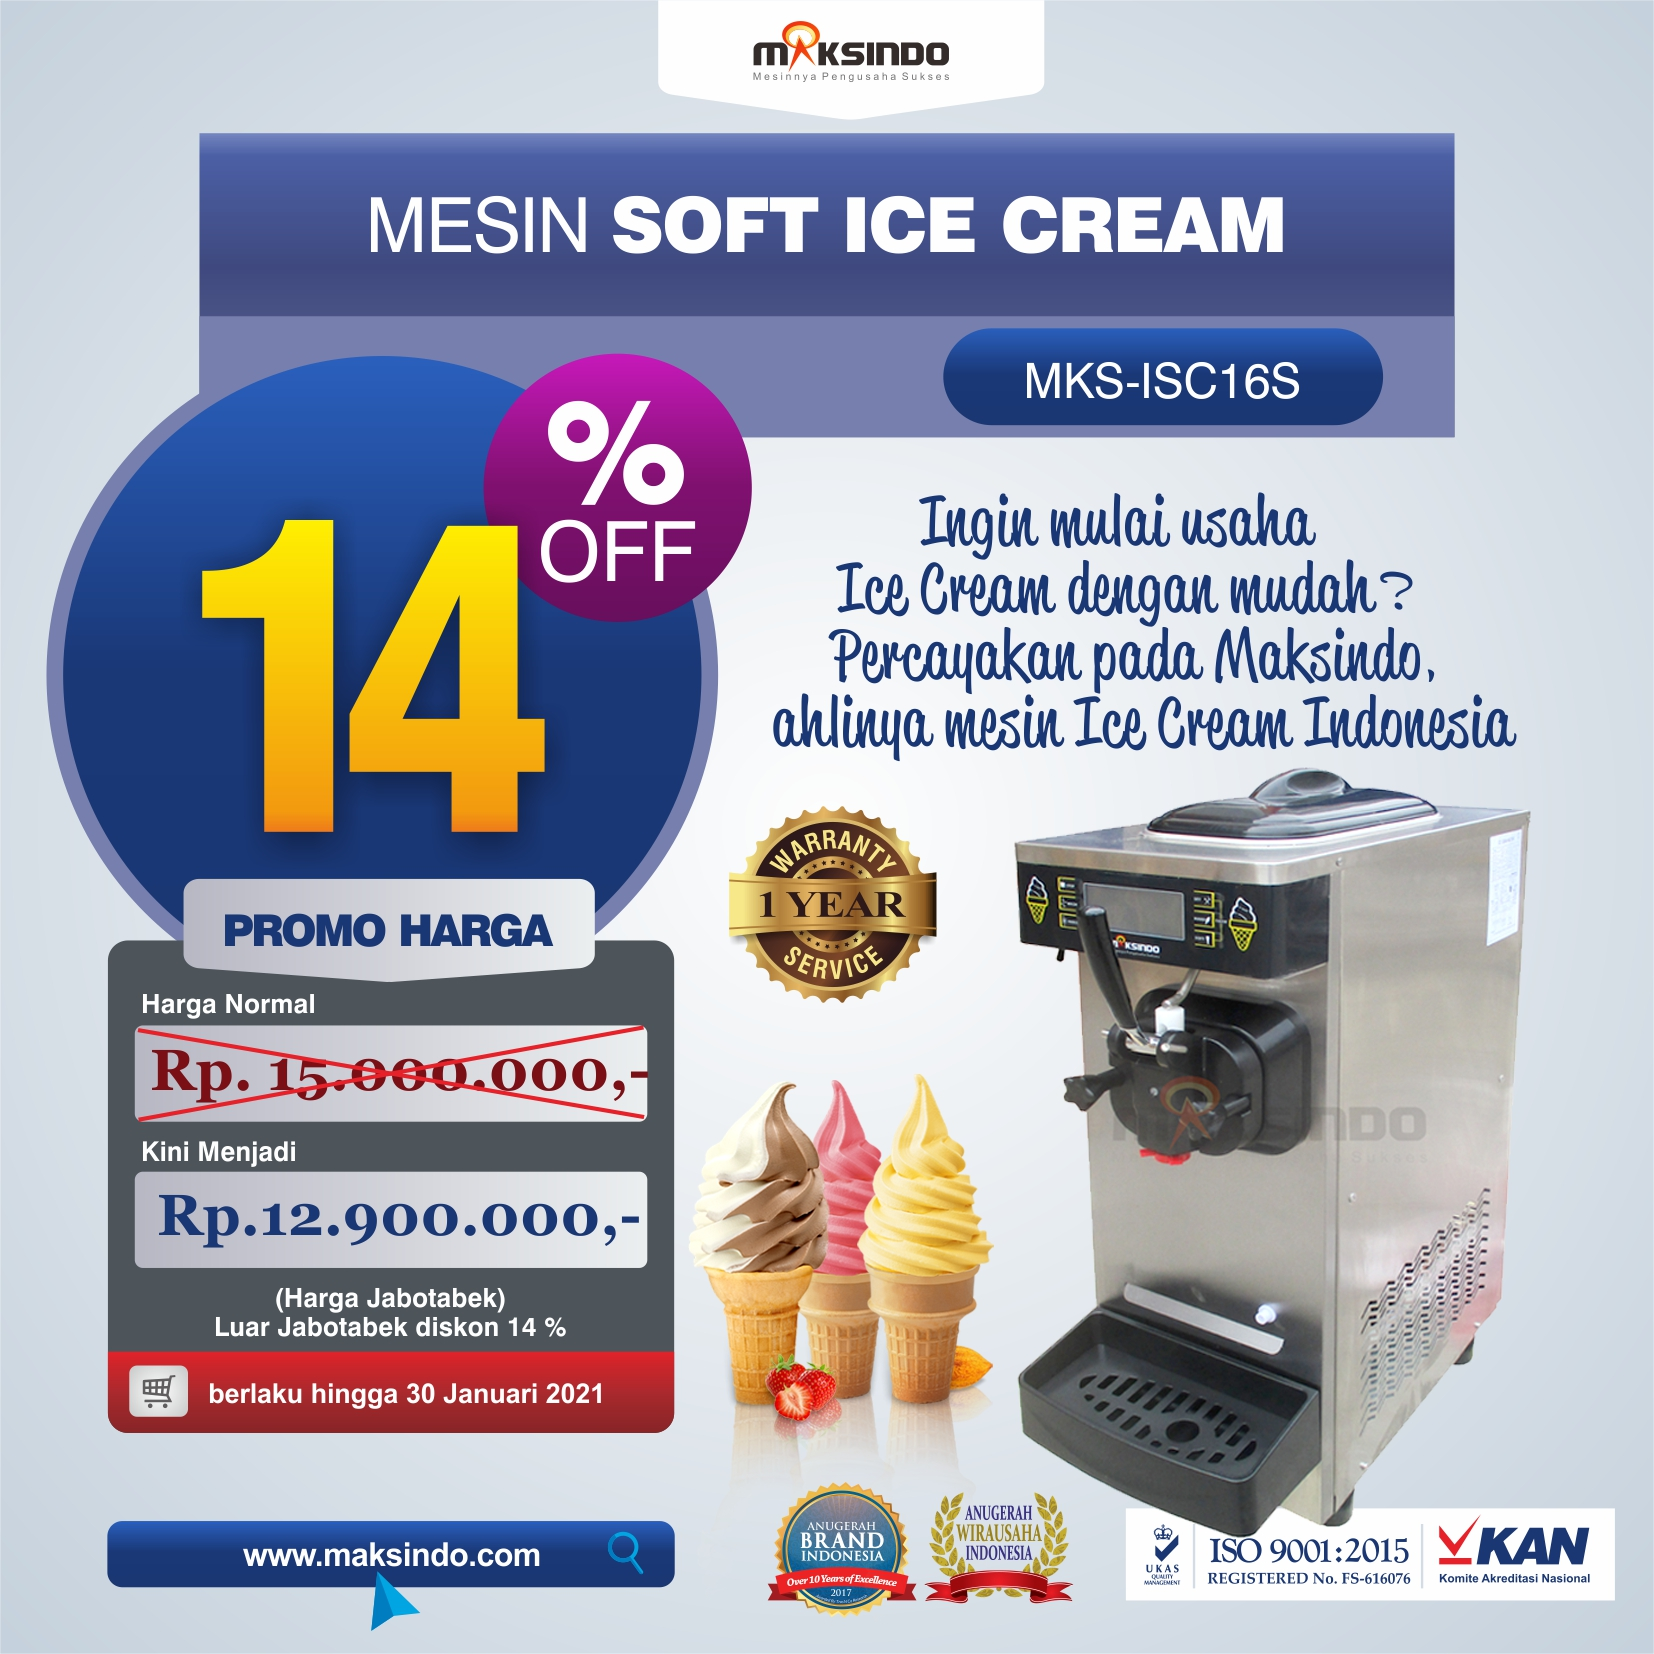 Mesin Soft Ice Cream ISC-16S